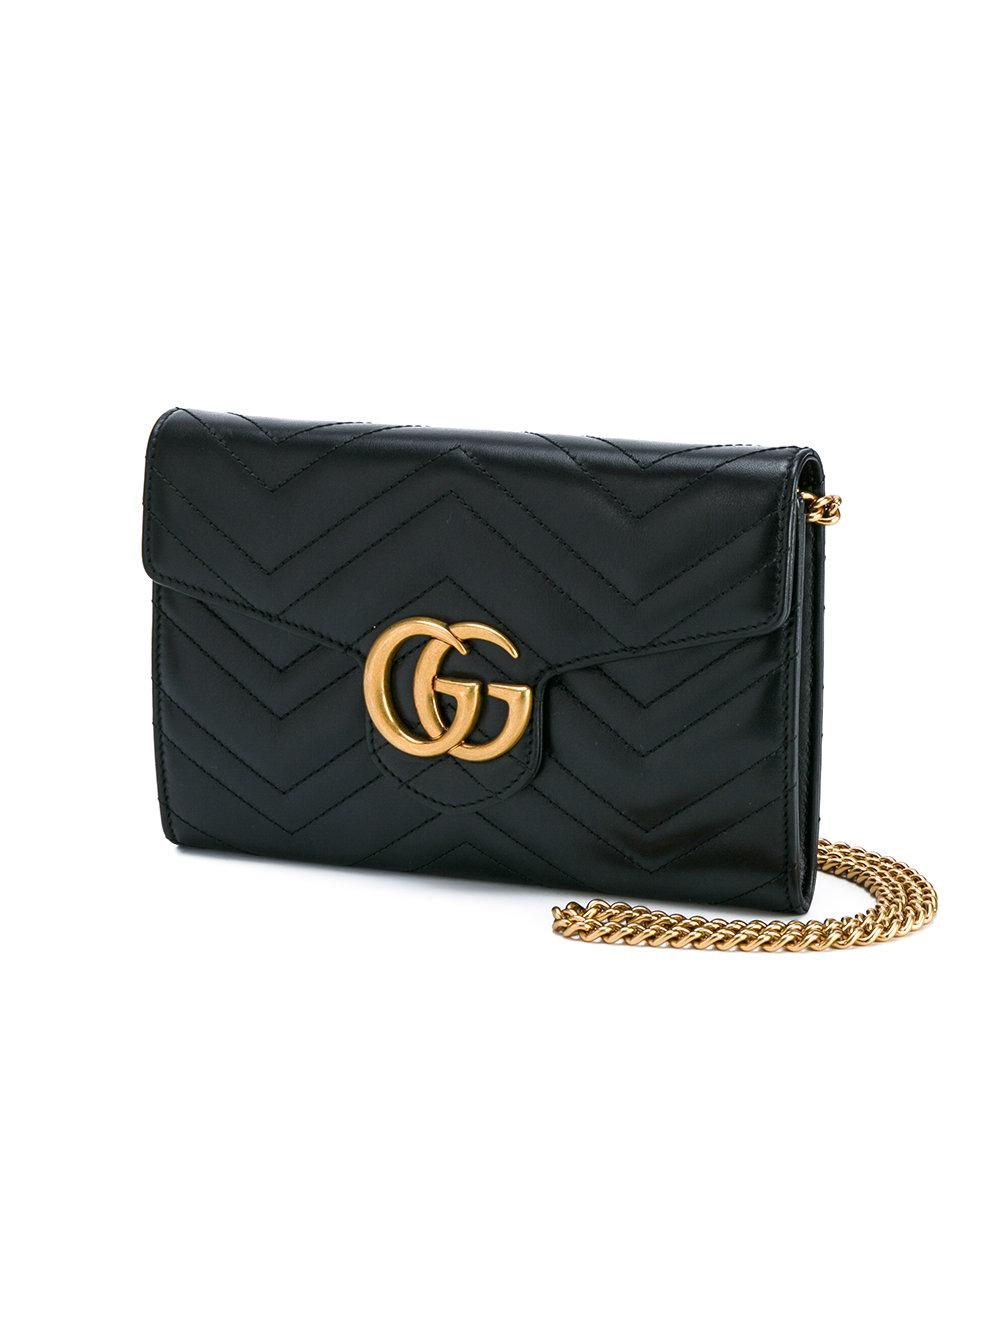 83d25586b39 Gucci Gg Marmont Matelasse Leather Pouch 476440 - Ontario Active ...